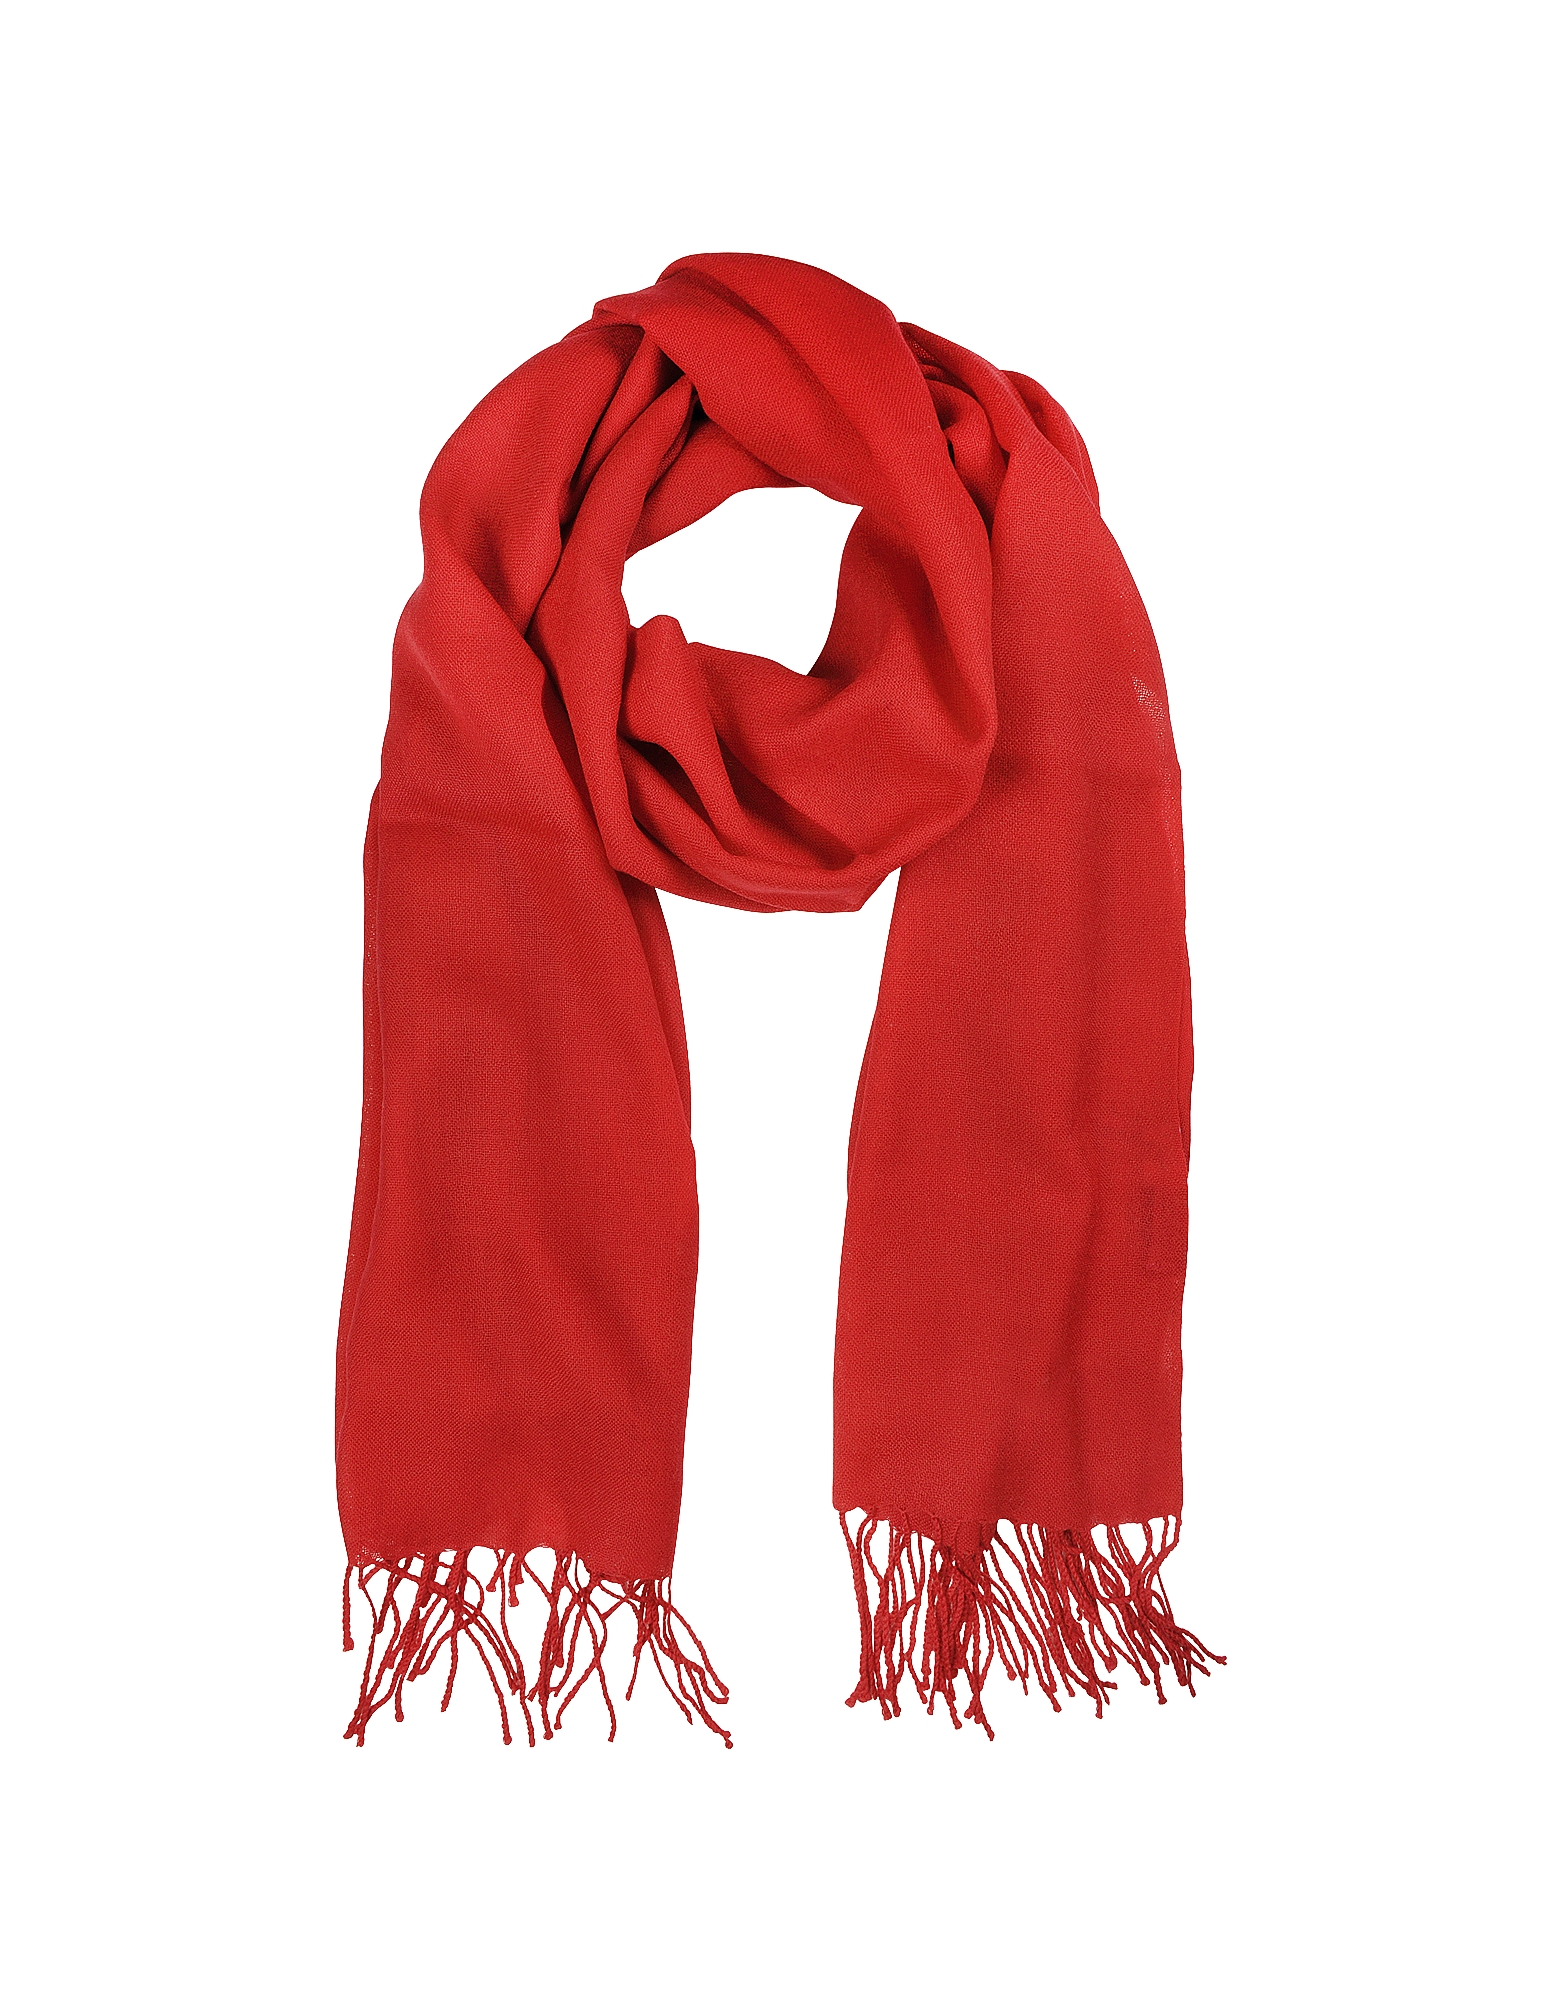 Mila Schon Scarves, Red Wool and Cashmere Stole